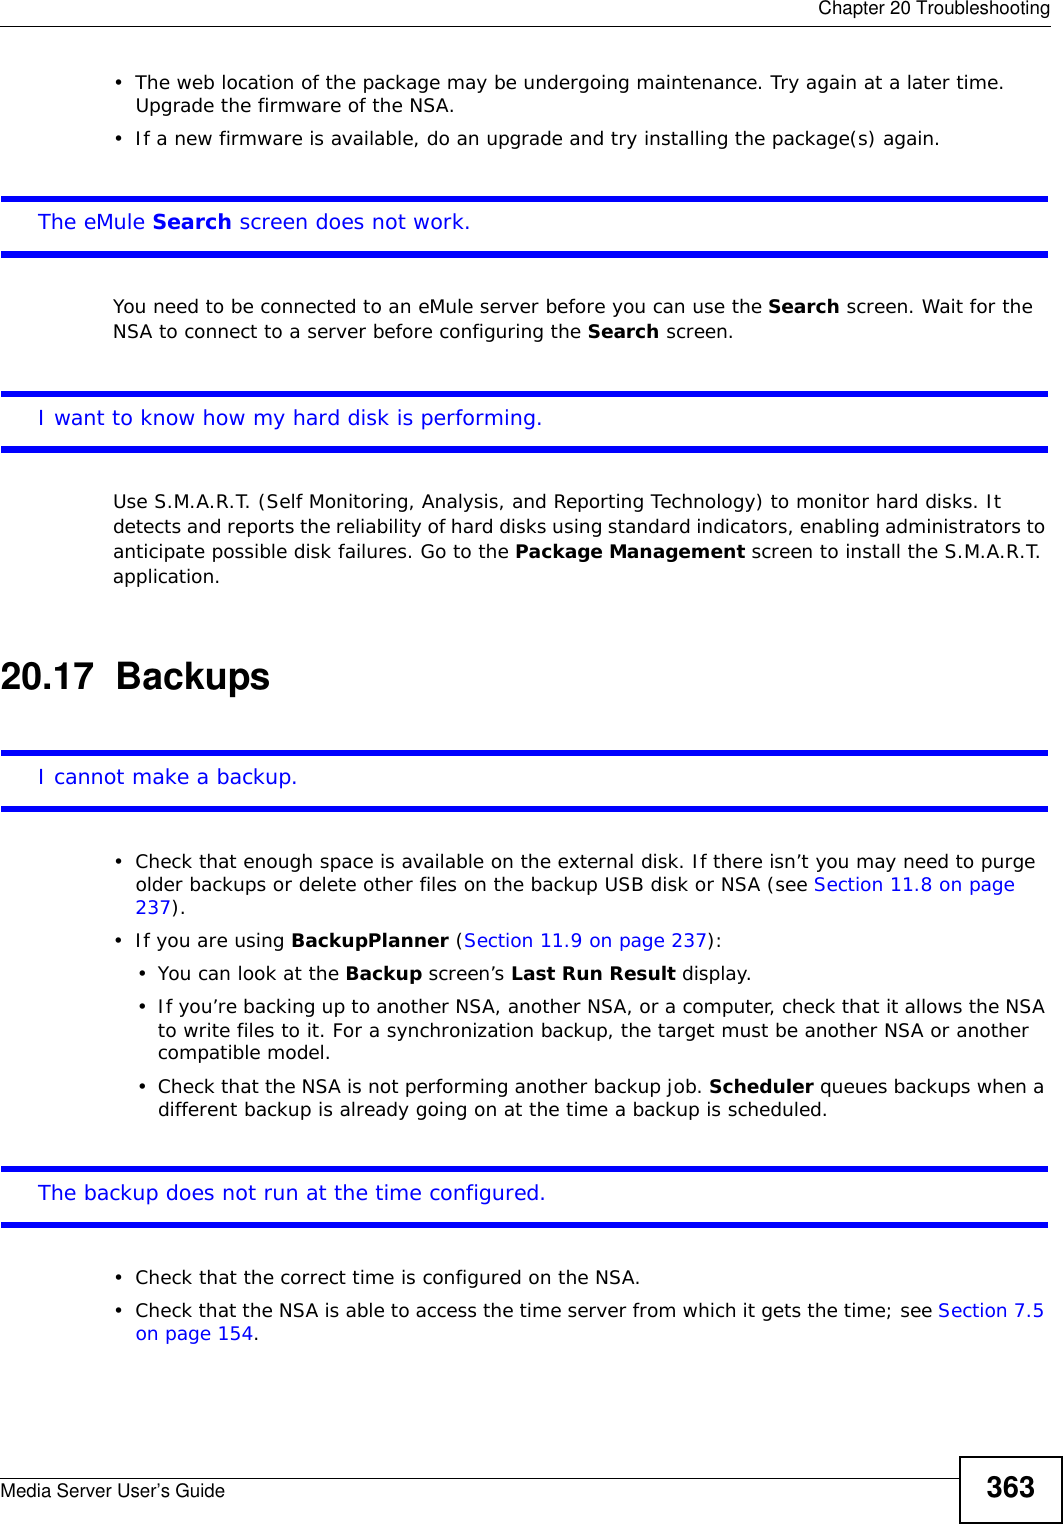 Zyxel Nsa325 Users Manual Book